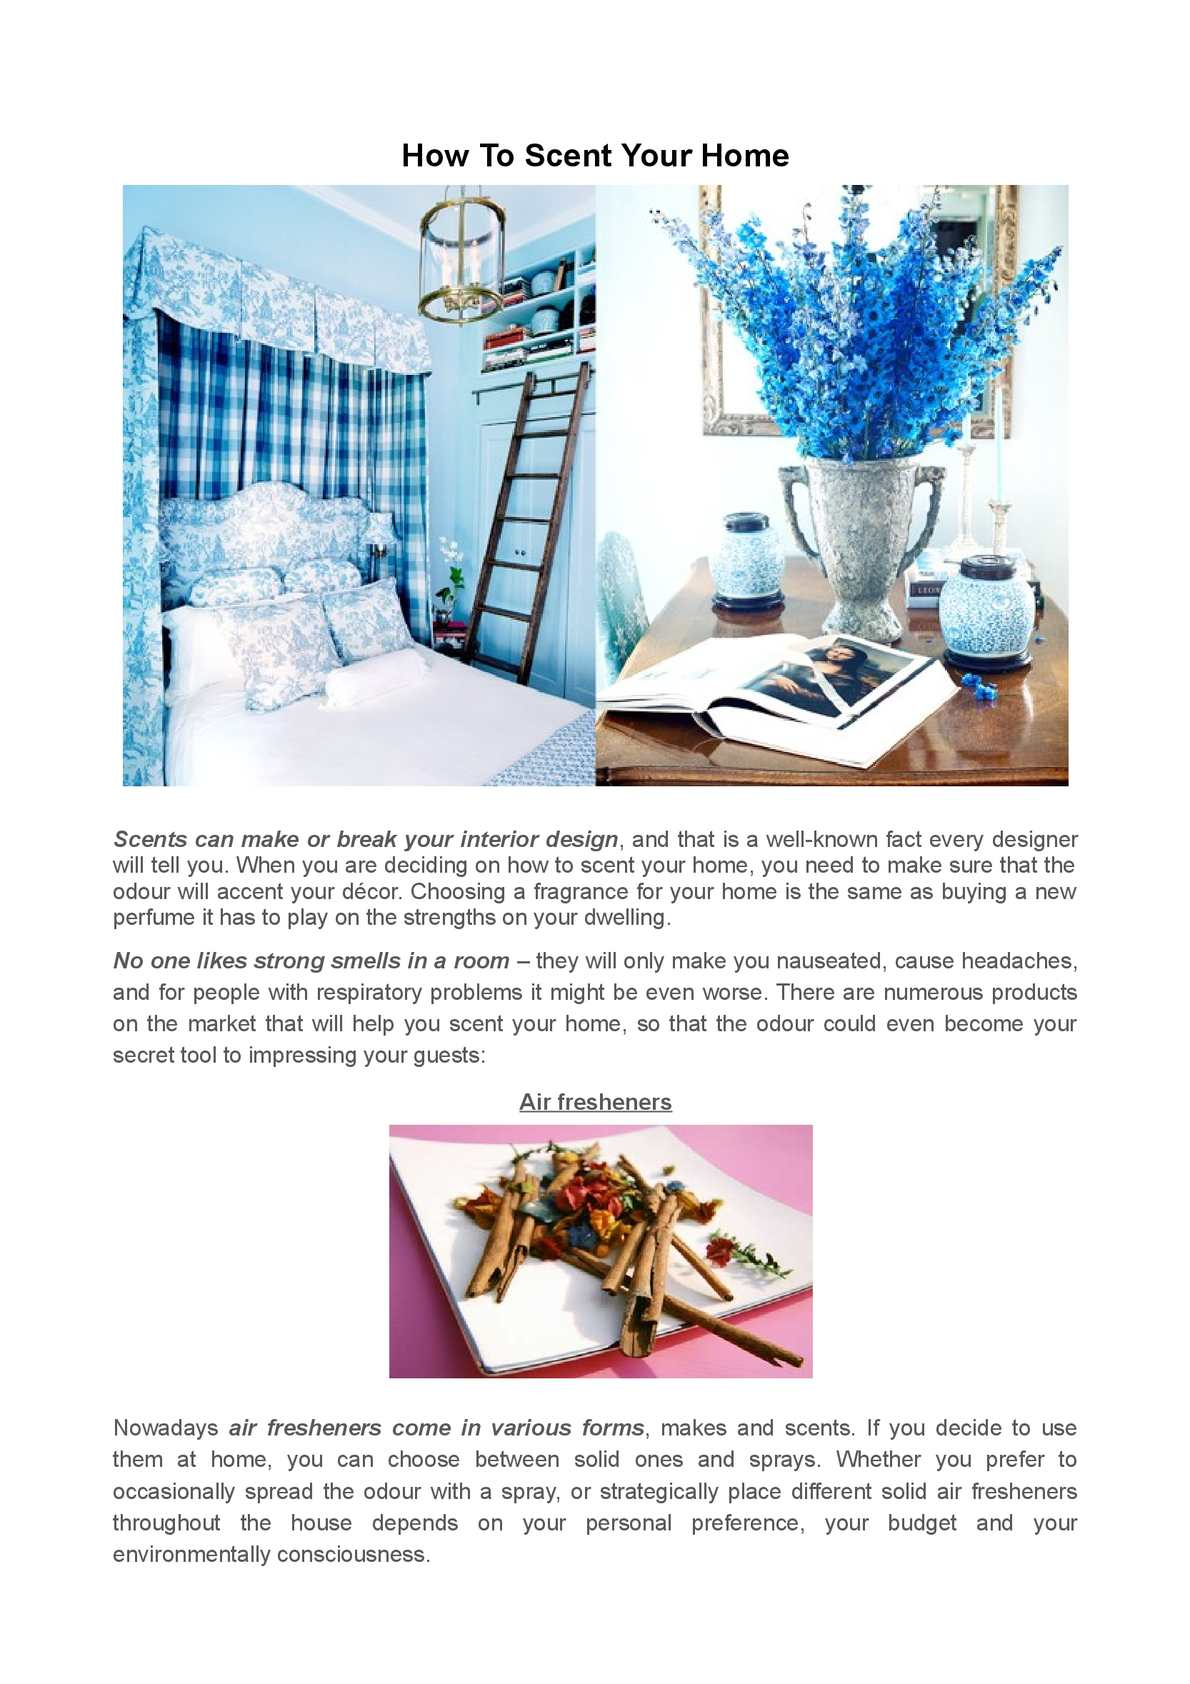 Calameo Creative Ideas On How To Scent Your Home